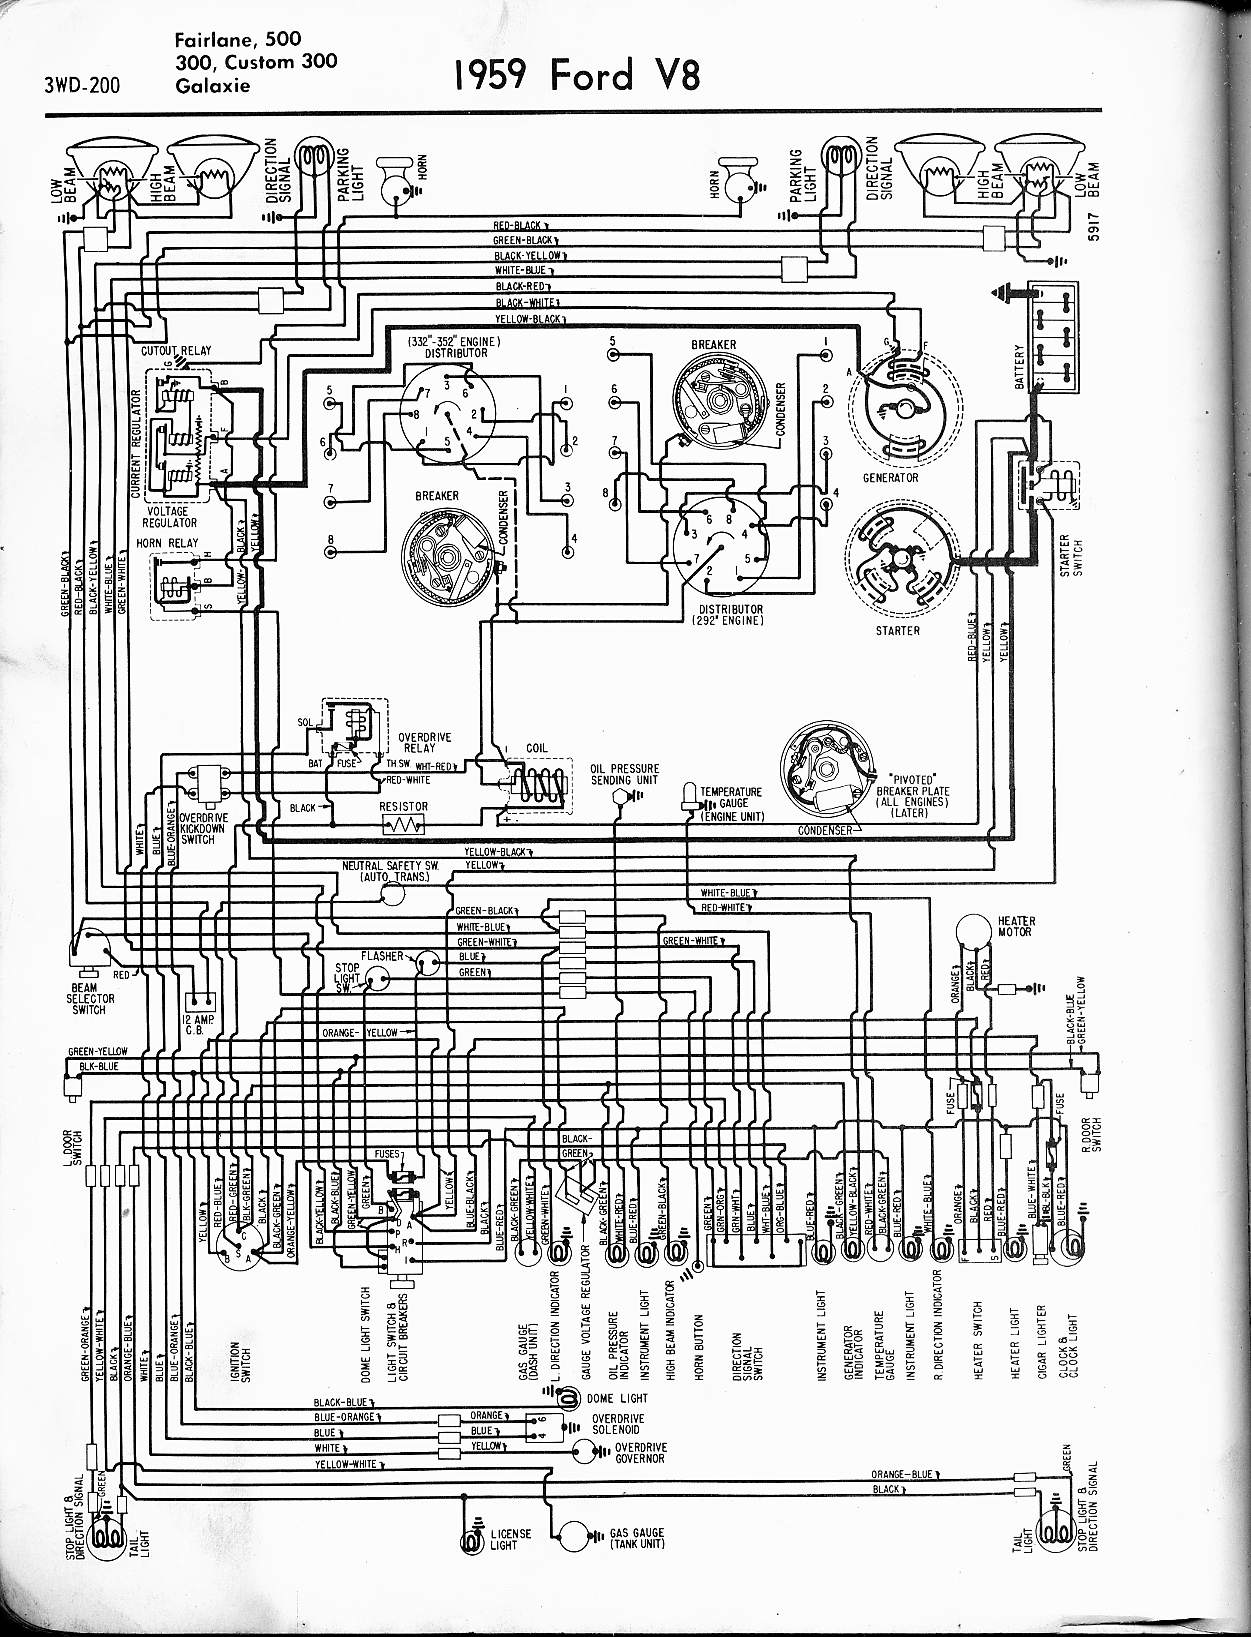 57 65 ford wiring diagrams ford econoline wiring-diagram 1959 v8 fairlane, 500, 300, custom 300